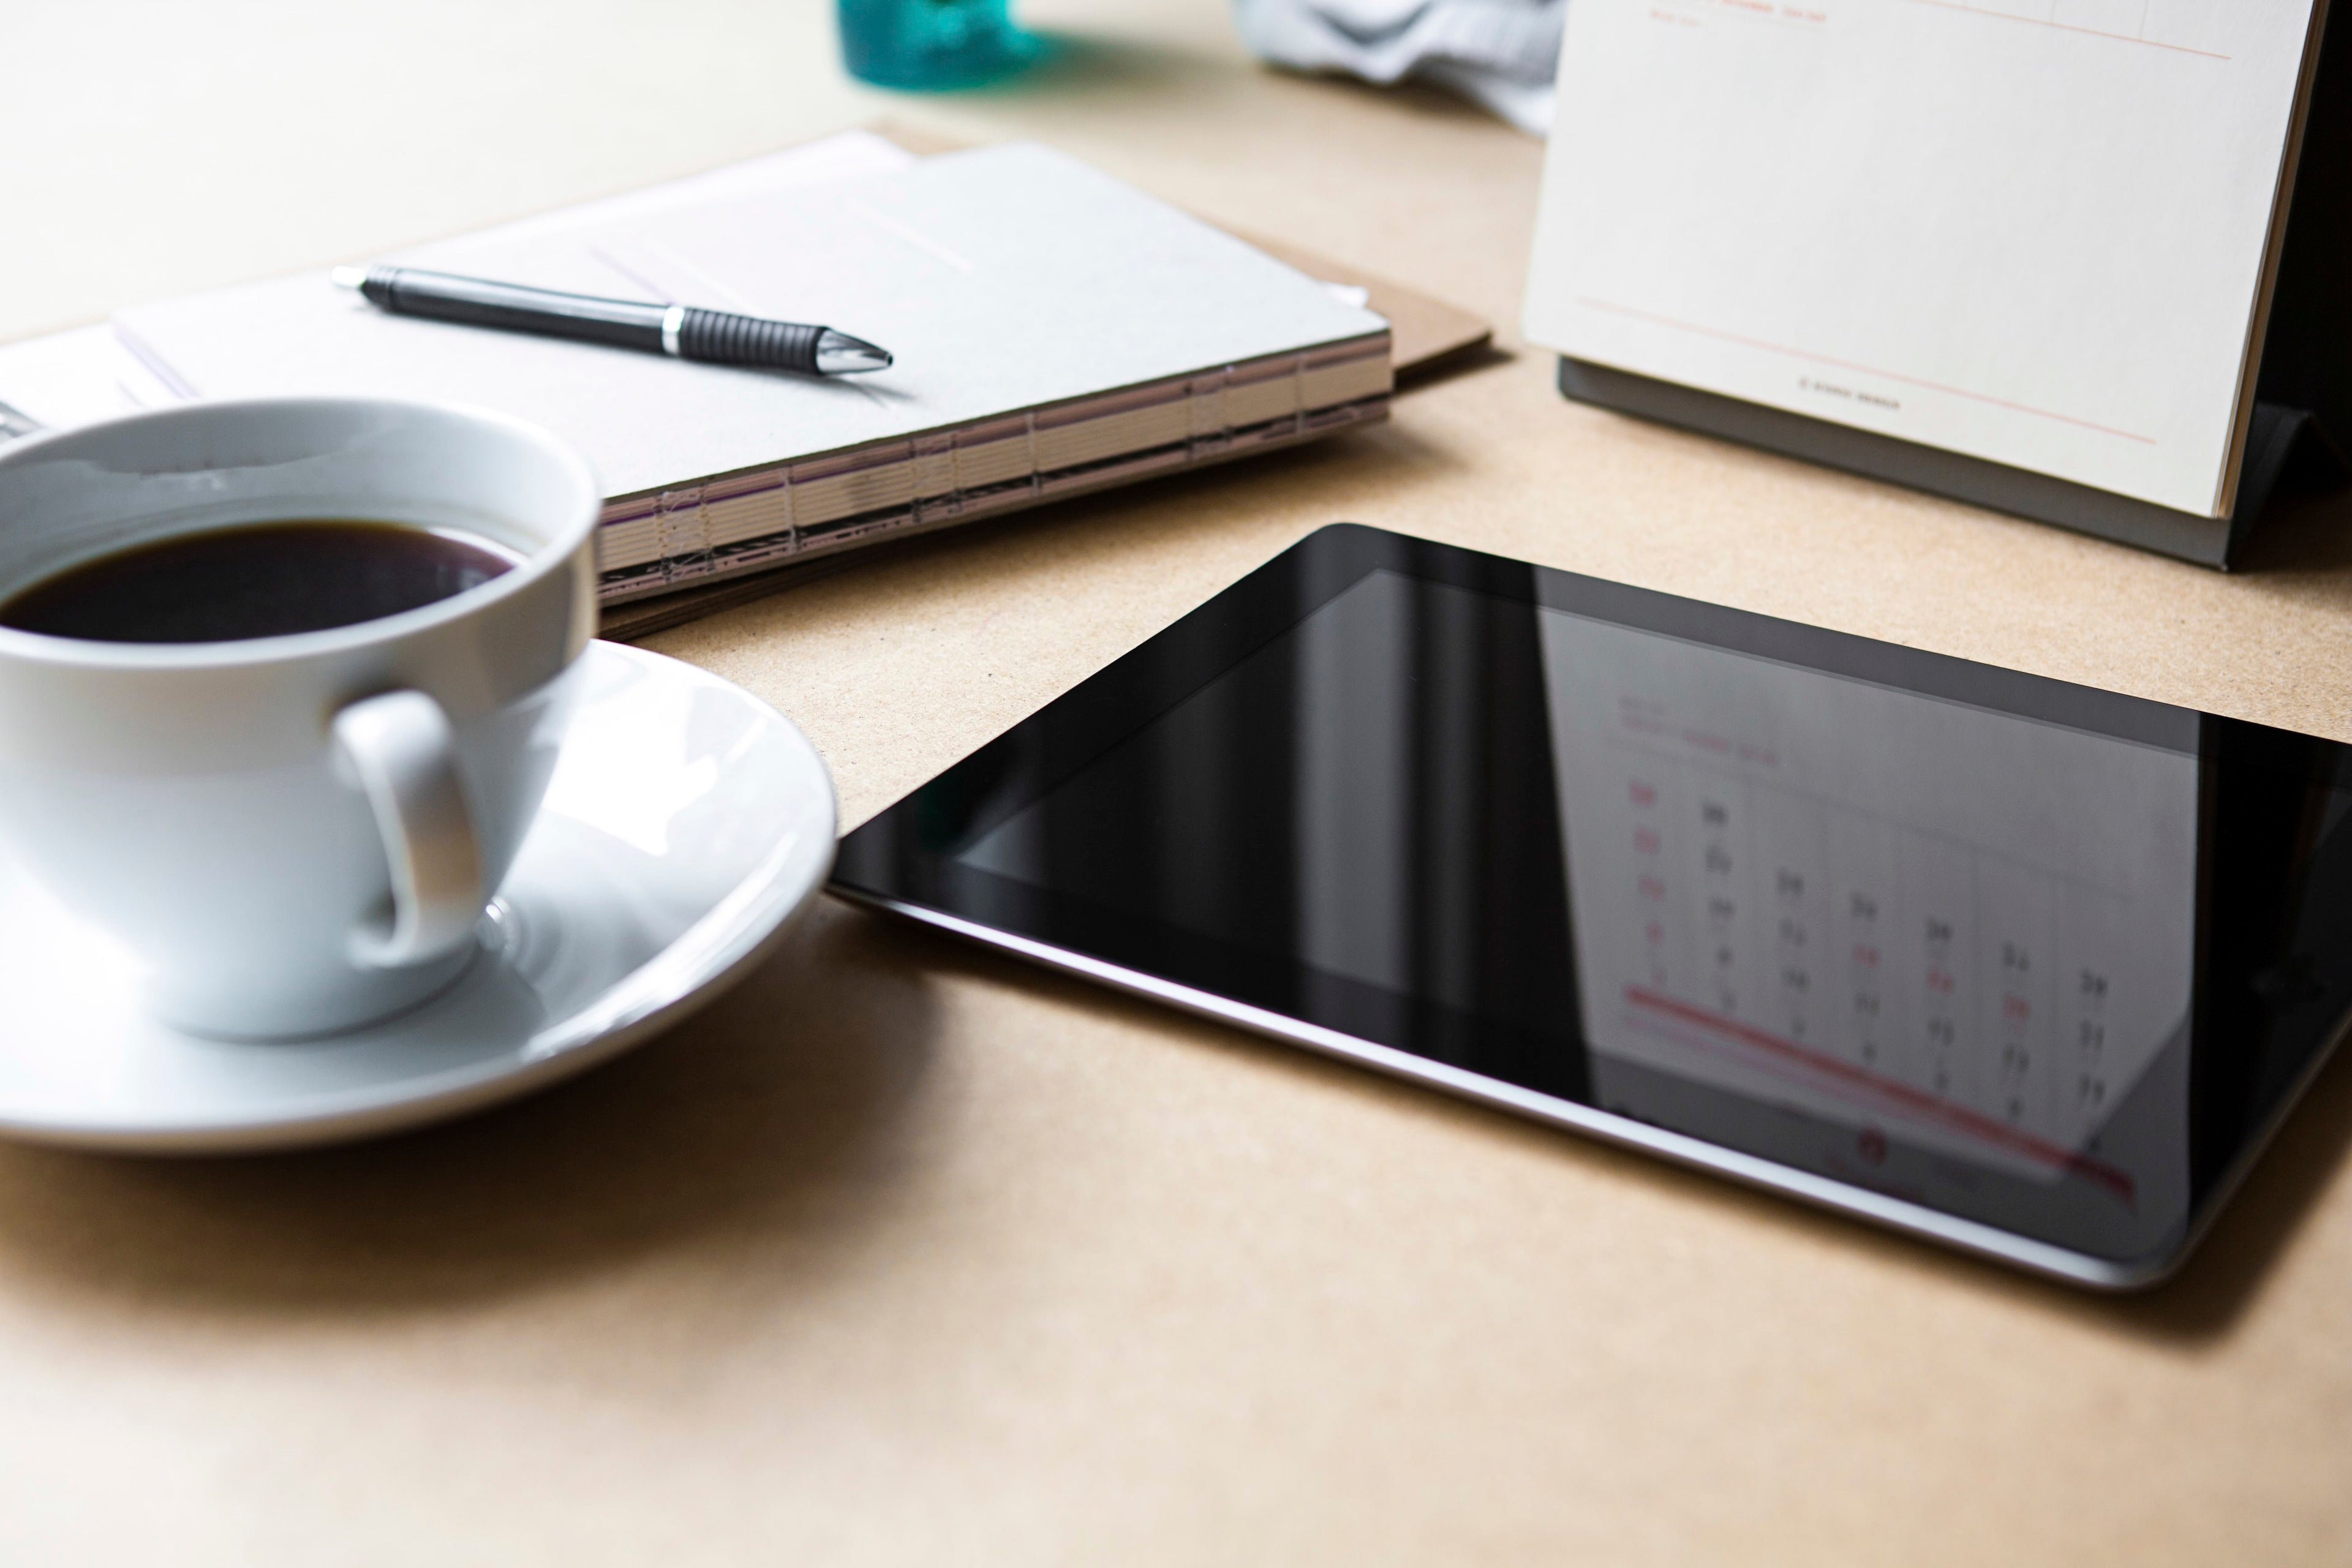 Tablet with book and coffee